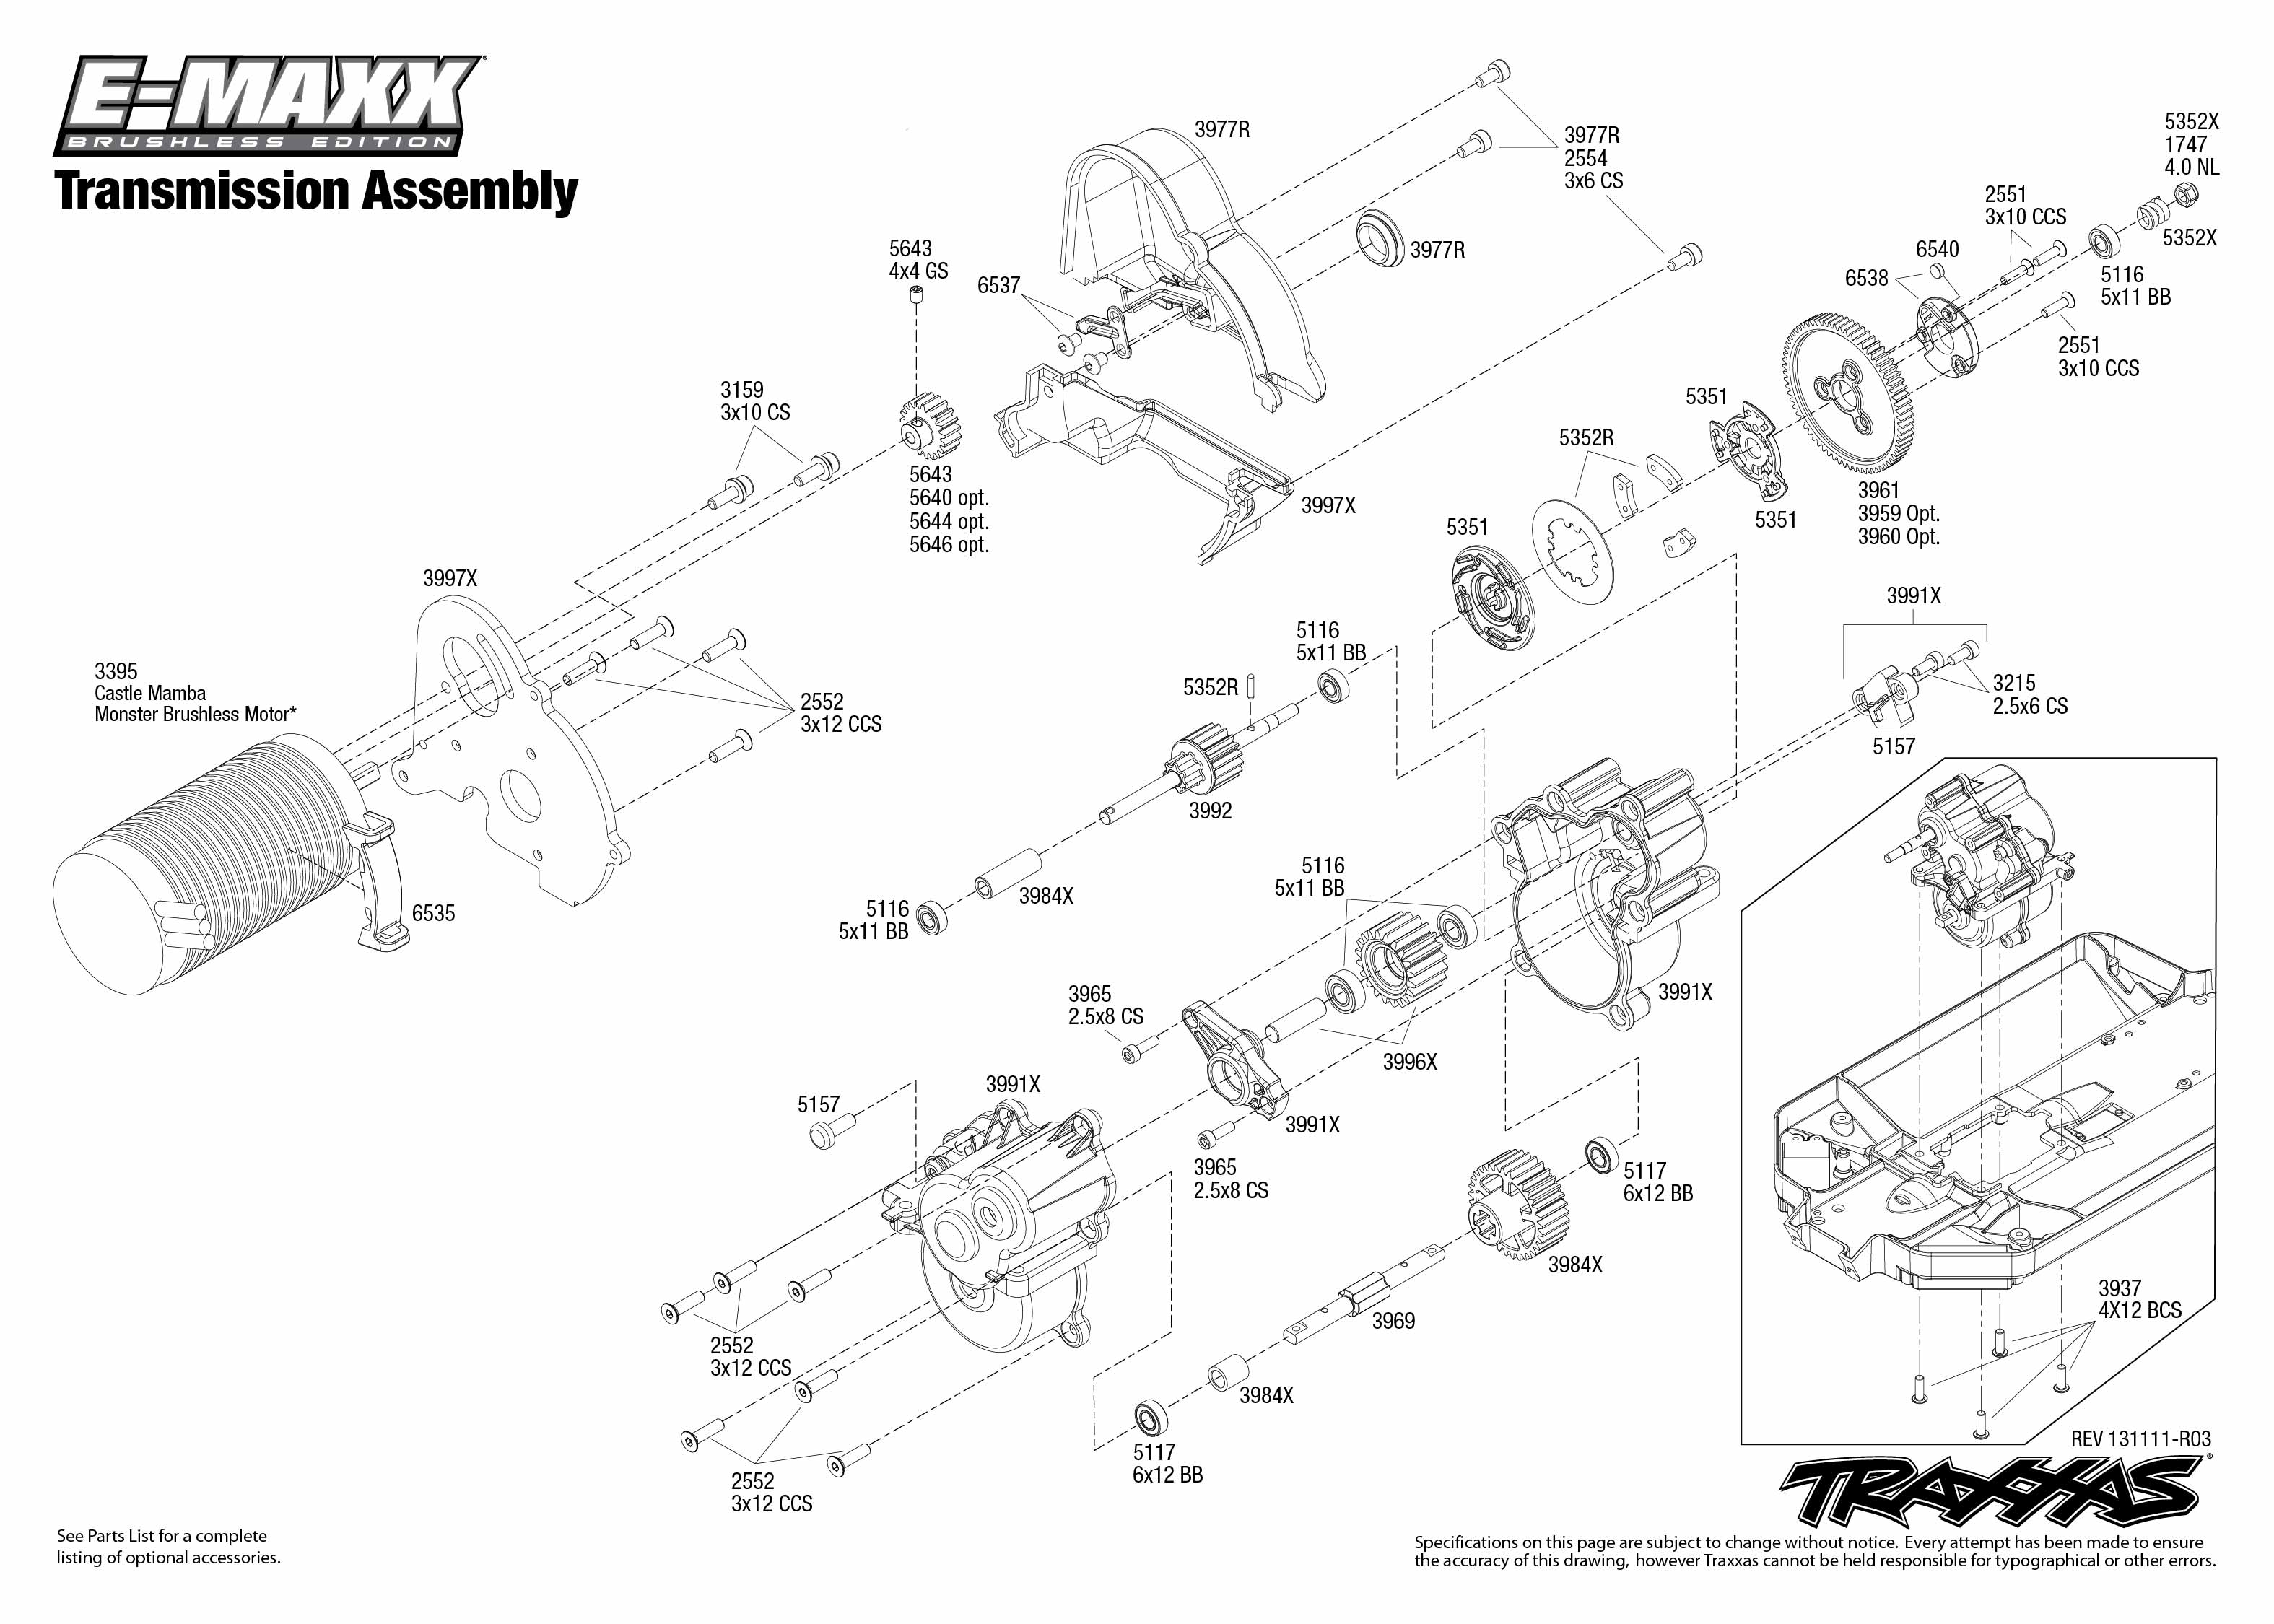 3908 Transmission Exploded Views (E-Maxx Brushless, w/ TQi